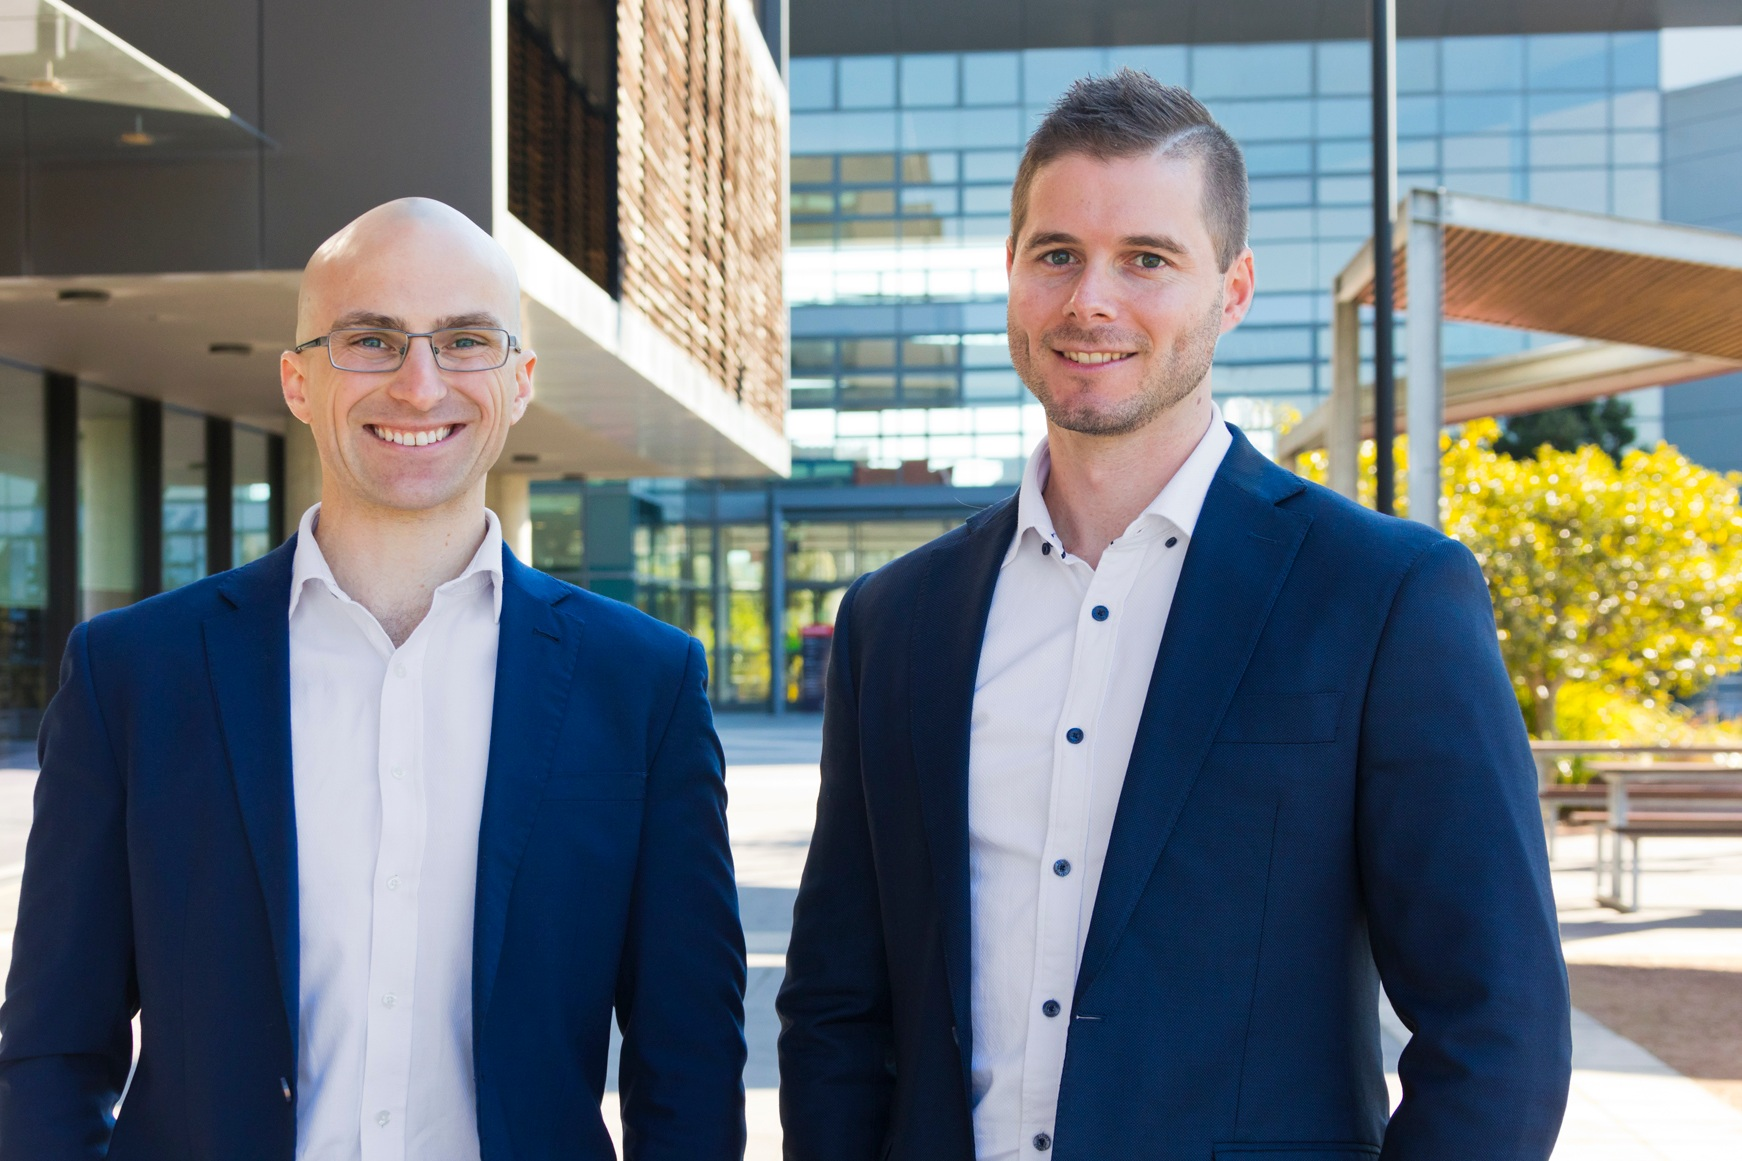 OUR TEAM - Meet Jarryd and Kevin. Degree qualified Certified Financial Planners® with over 20 years of expertise here in the Illawarra.